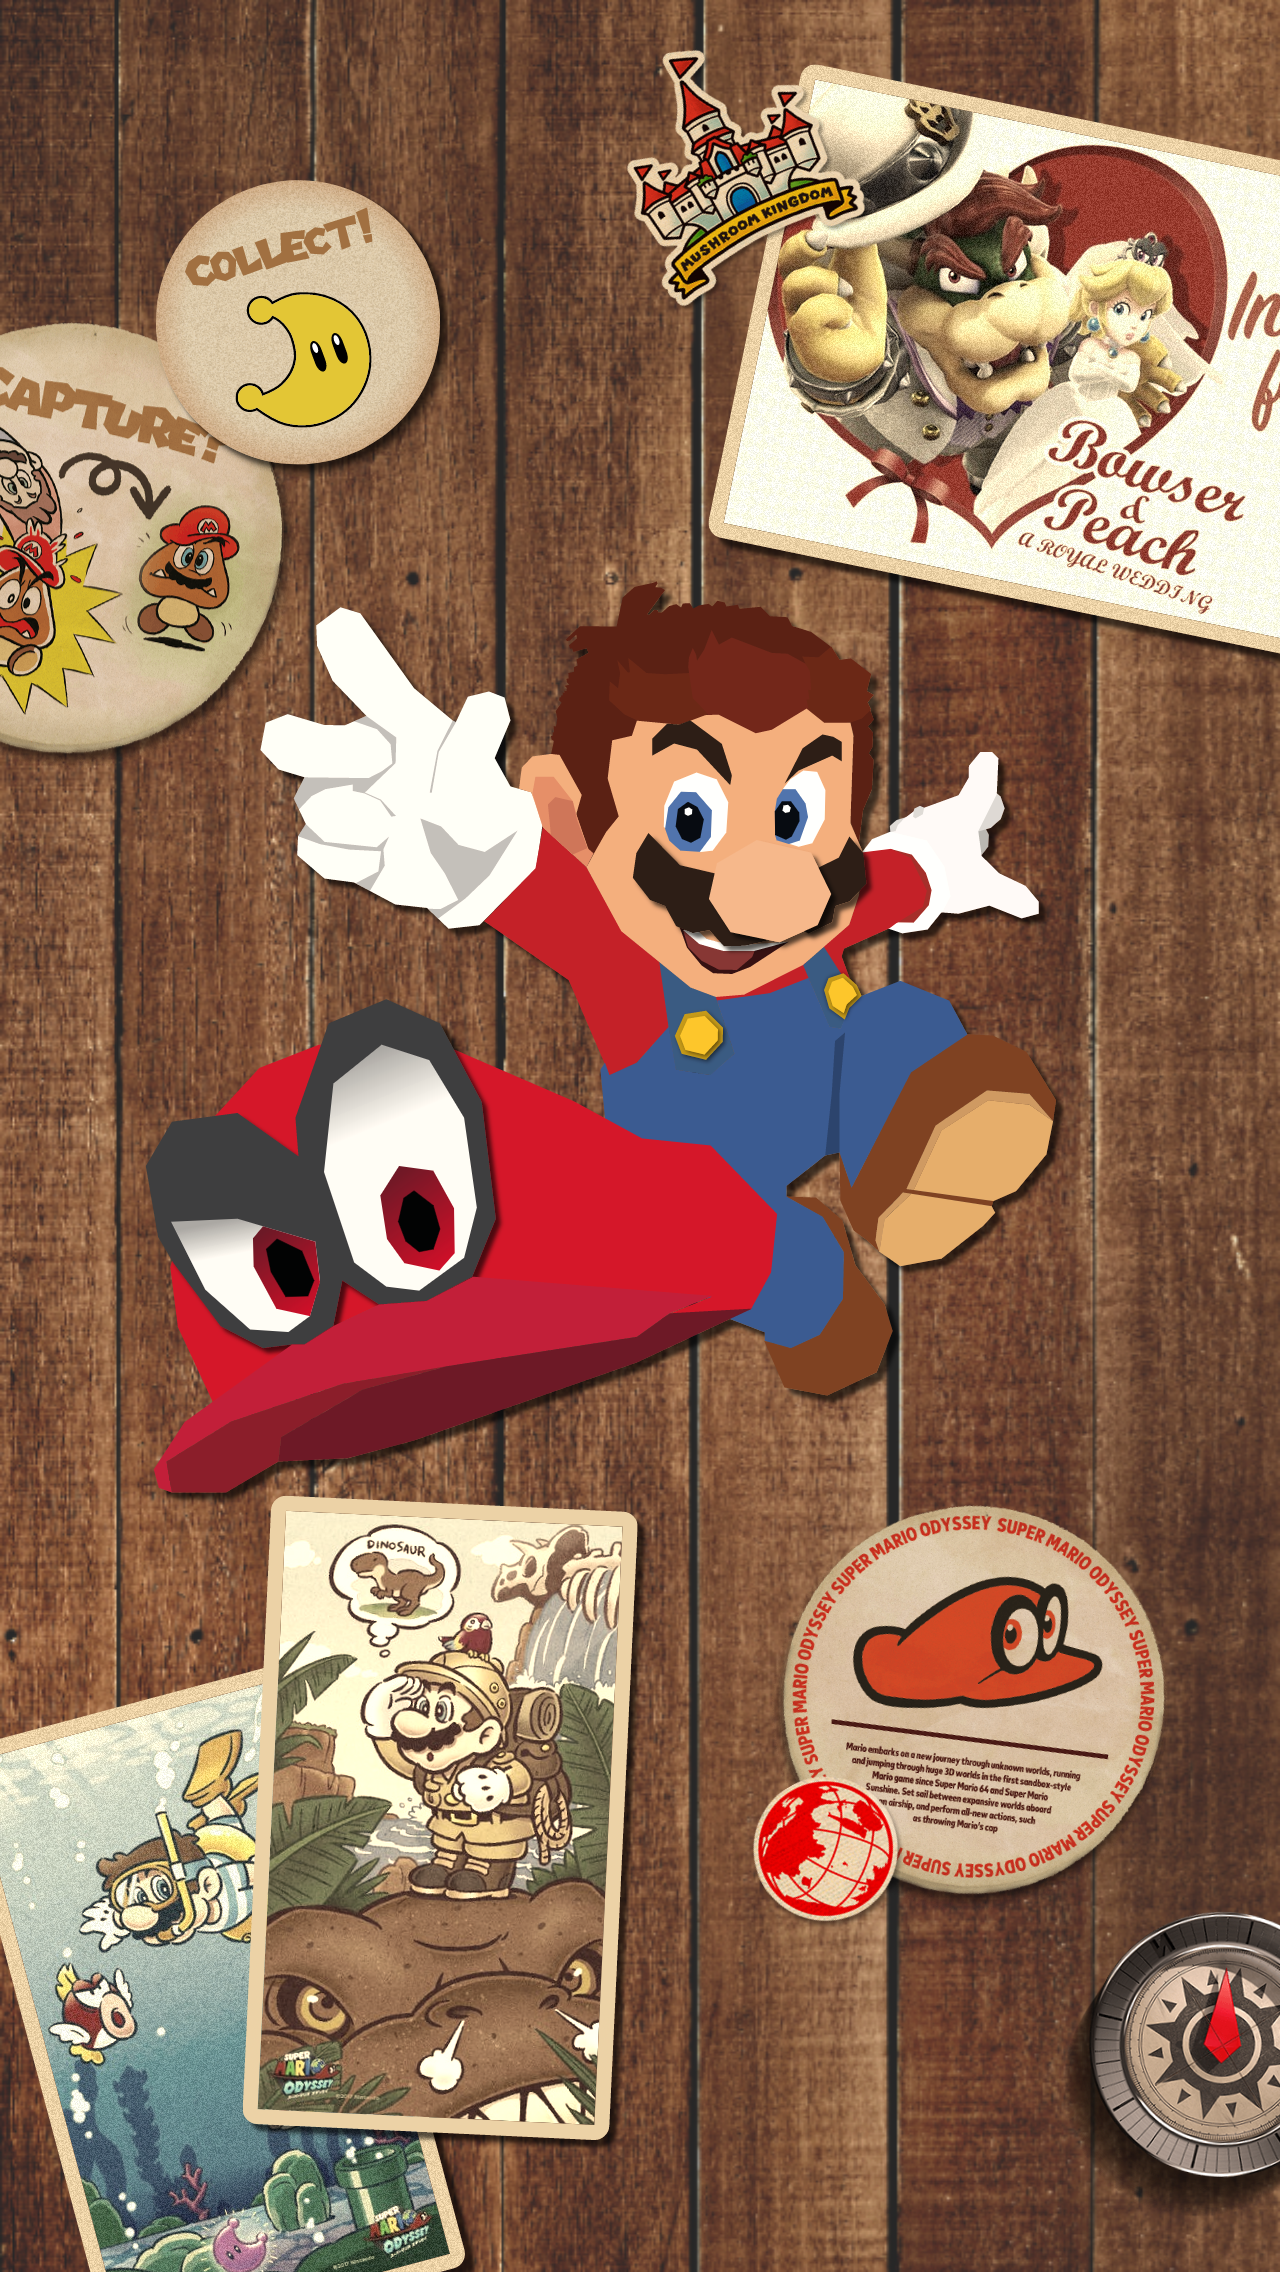 I Made A Super Mario Odyssey Wallpaper With The Style From The Japanese Smo Website Mario Wallpaper Nintendo Wallpaper Super Mario Odyssey